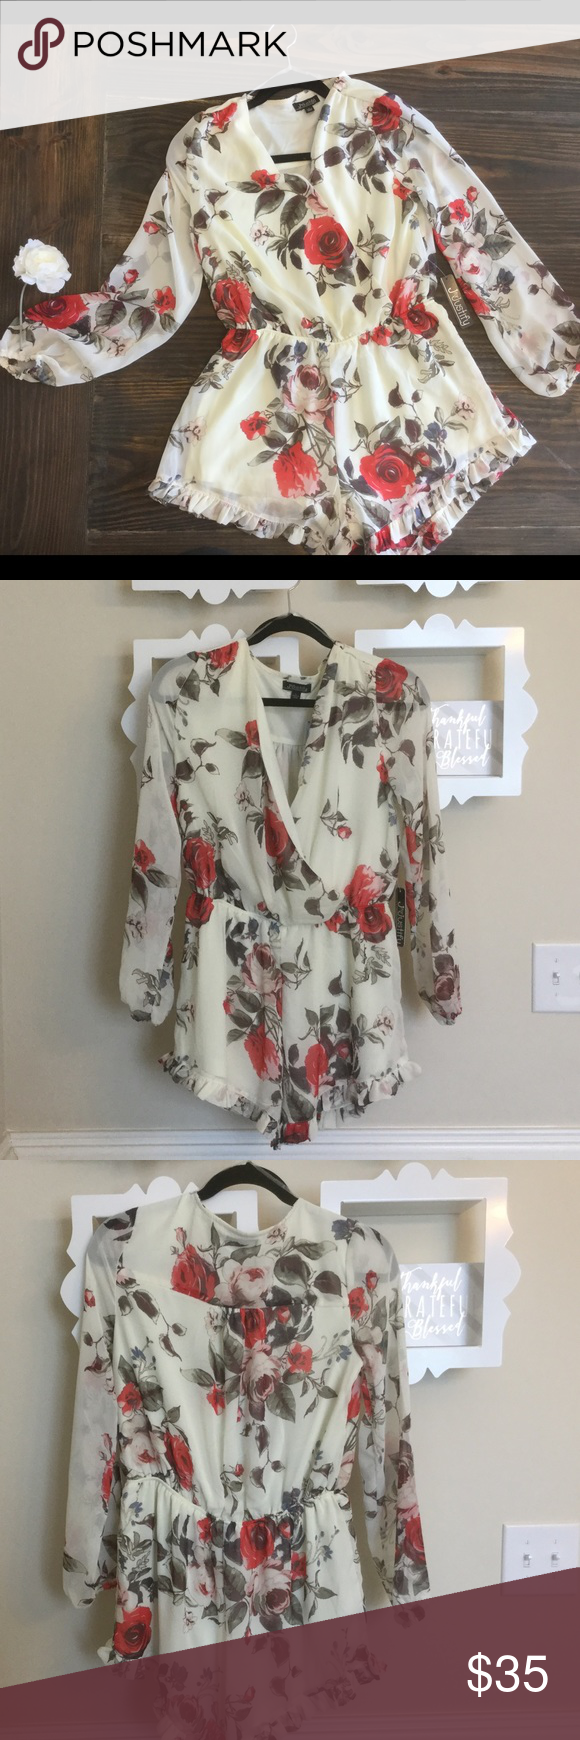 118b1cb26f7b NWT J For Justify floral multi-colored romper Made by J for Justify romper.  Floral - Cream with beautiful red roses. Size L. Sheer long sleeves. V neck.